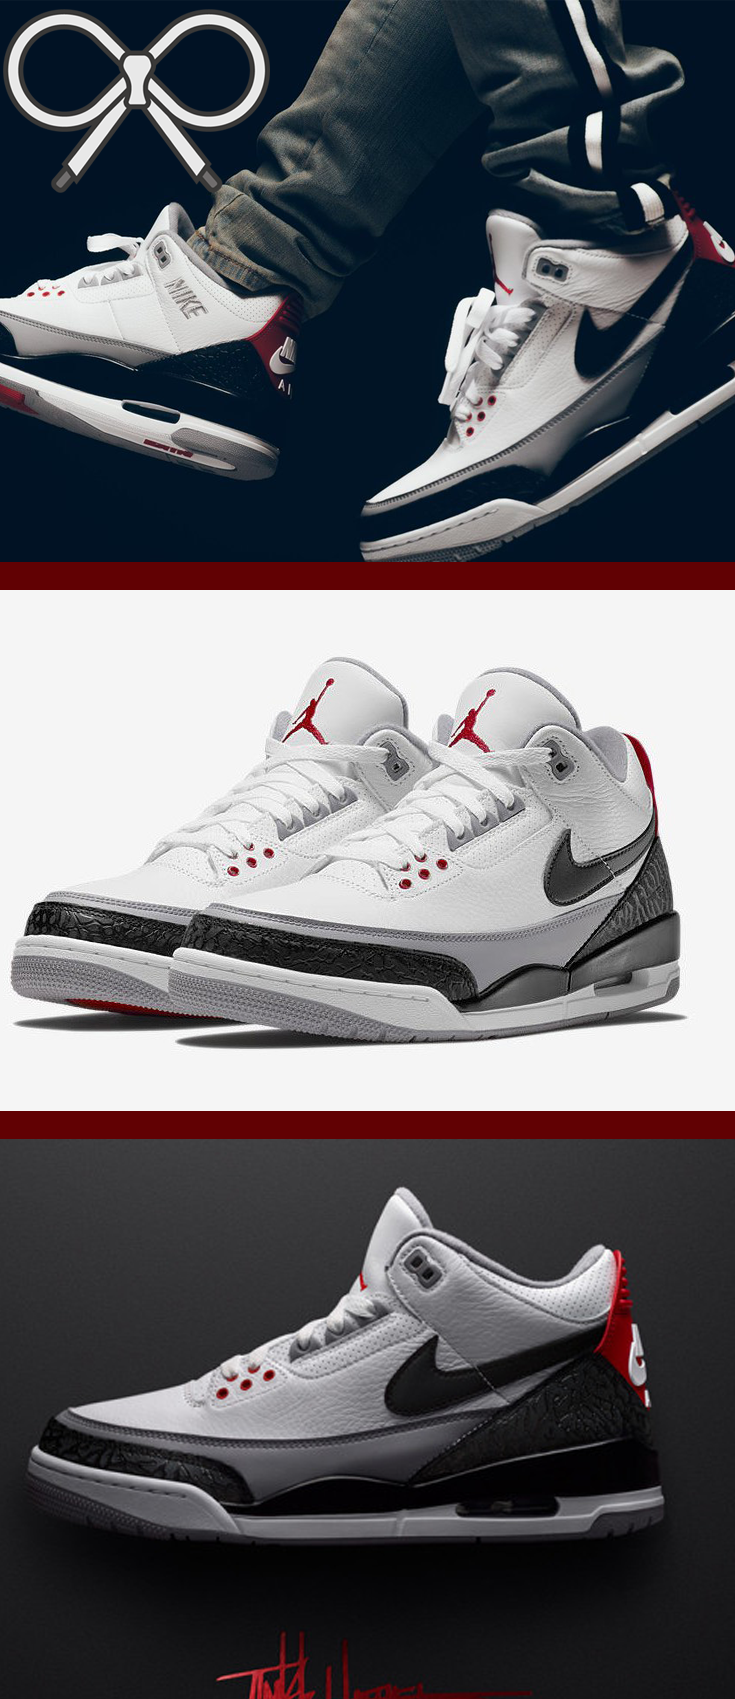 496137f0cb07 Based on the original Air Jordan 3 sketch by Tinker Hatfield.